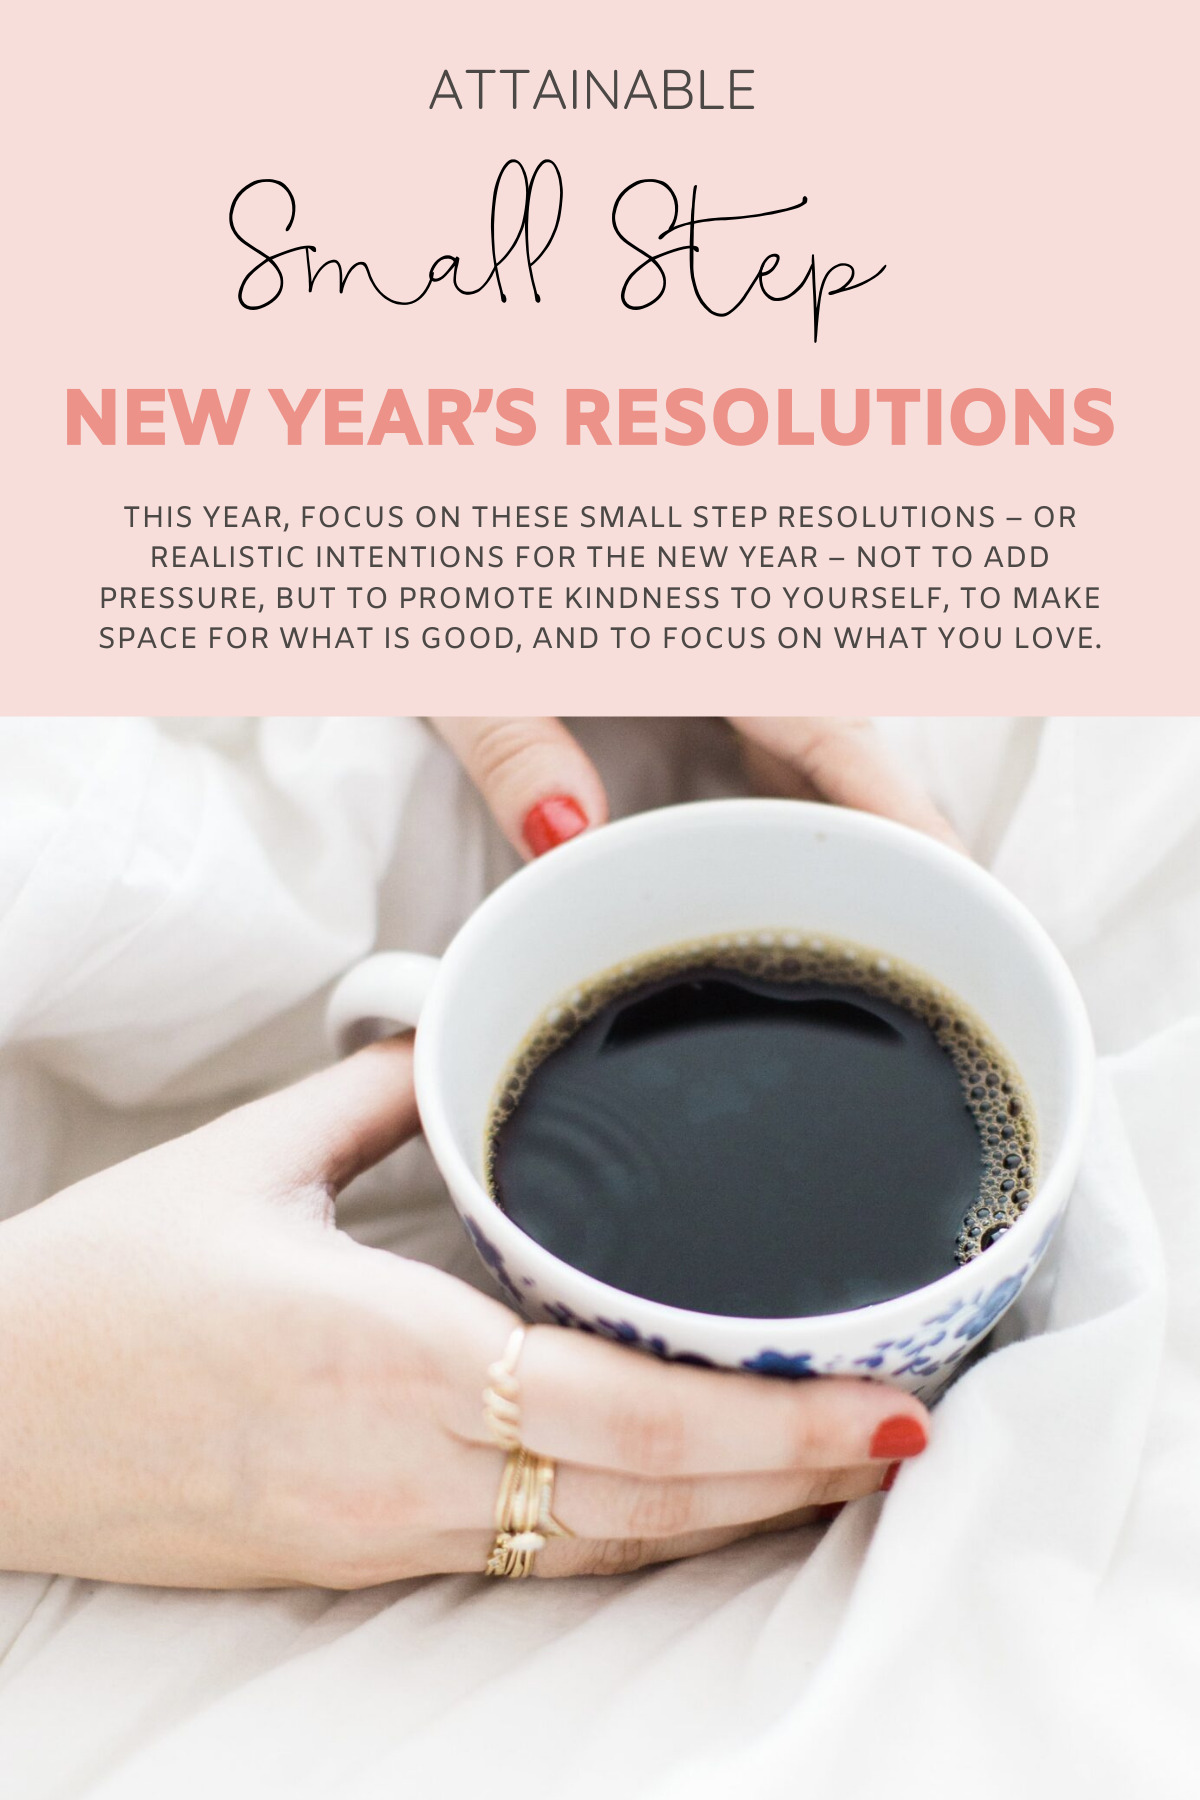 Slow Start New Years Resolutions - Attainable Small Step Intentions for the New Year | @glitterinclexi | GLITTERINC.COM